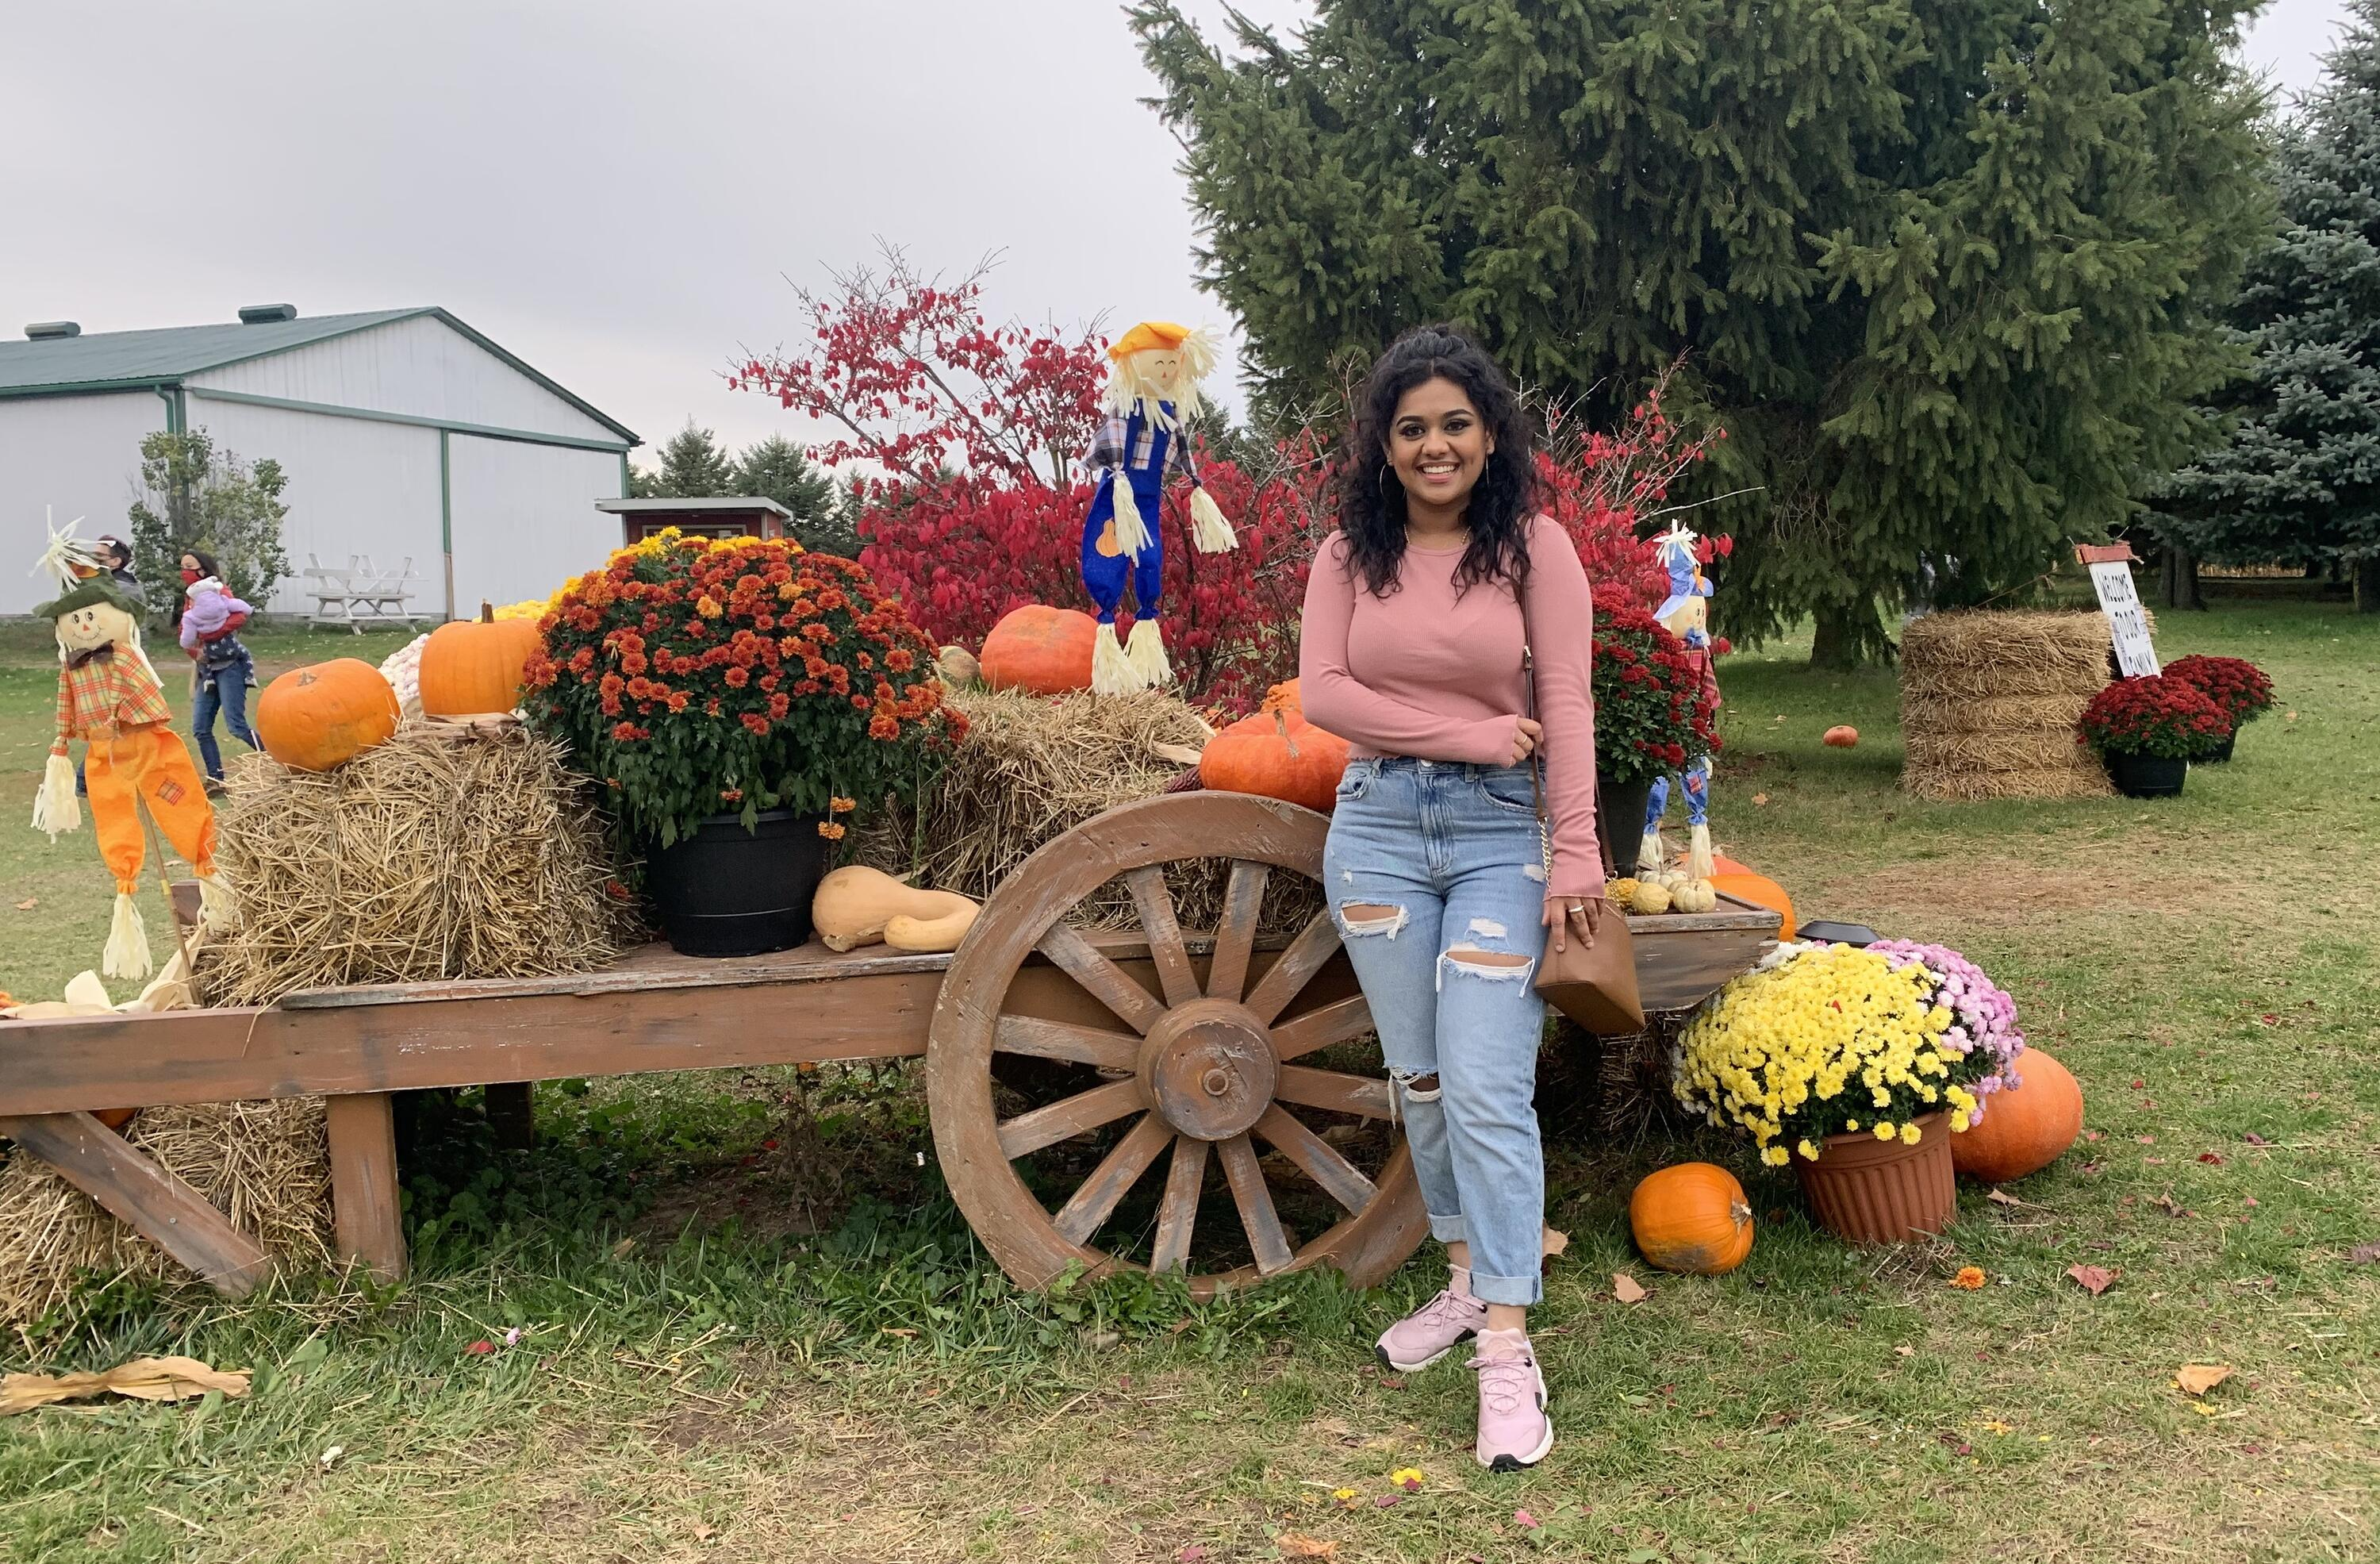 Nickie smiling with halloween decorations in a farm